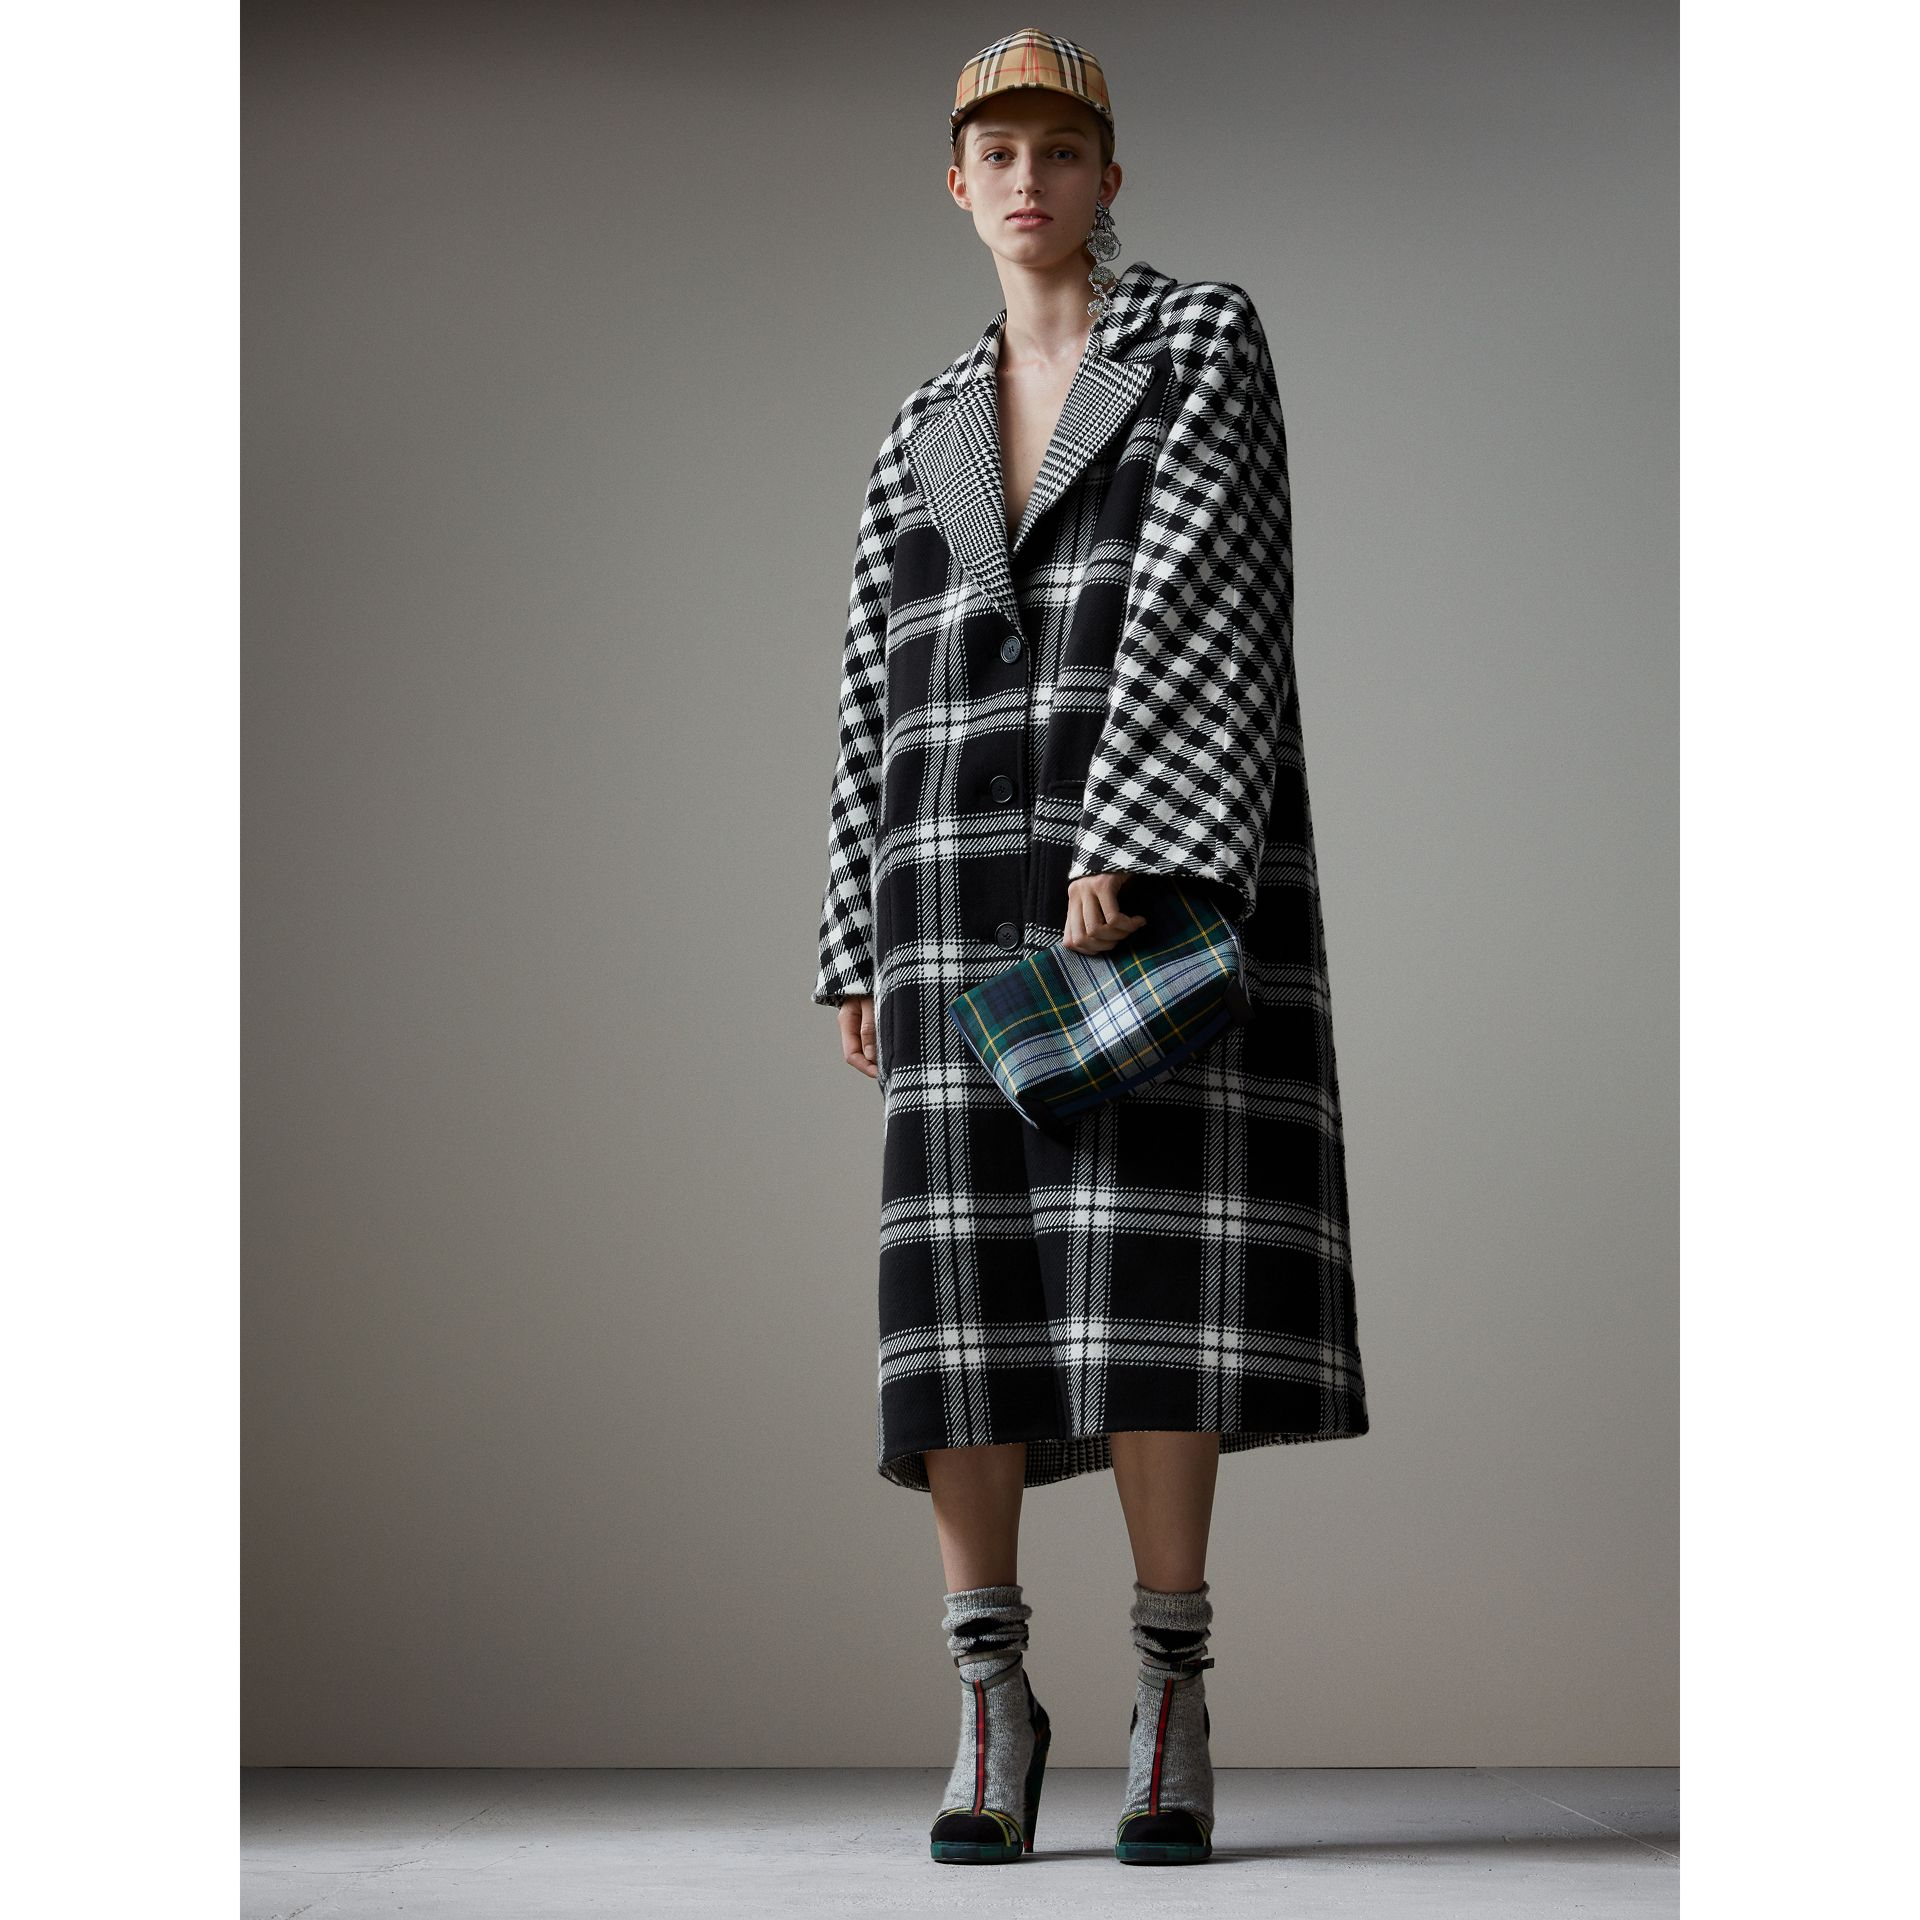 Reversible Multi-check Wool Cashmere Coat in Black/white - Women | Burberry United States - gallery image 1